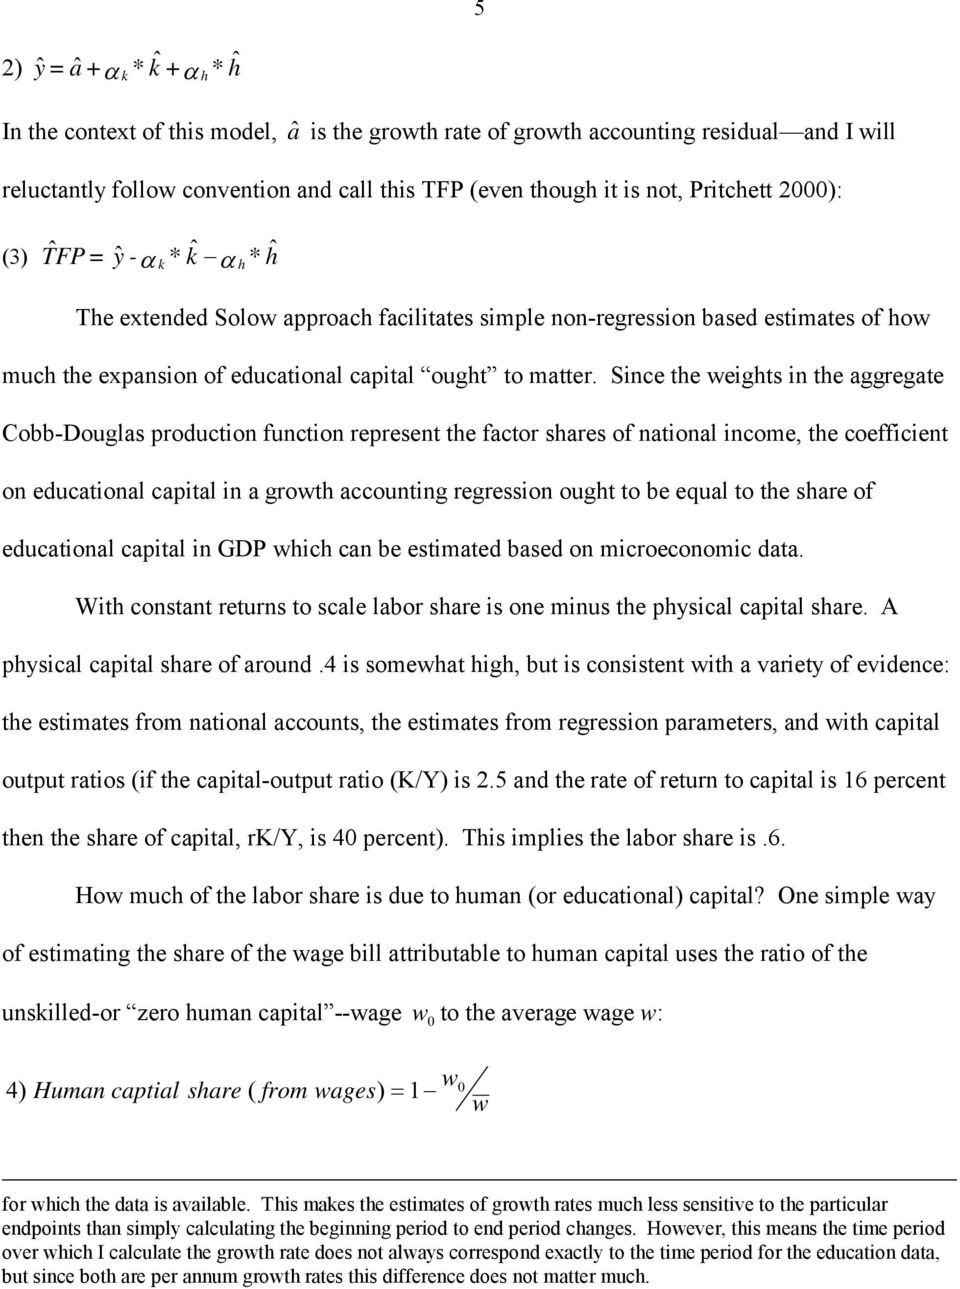 Since the weights in the aggregate Cobb-Douglas production function represent the factor shares of national income, the coefficient on educational capital in a growth accounting regression ought to